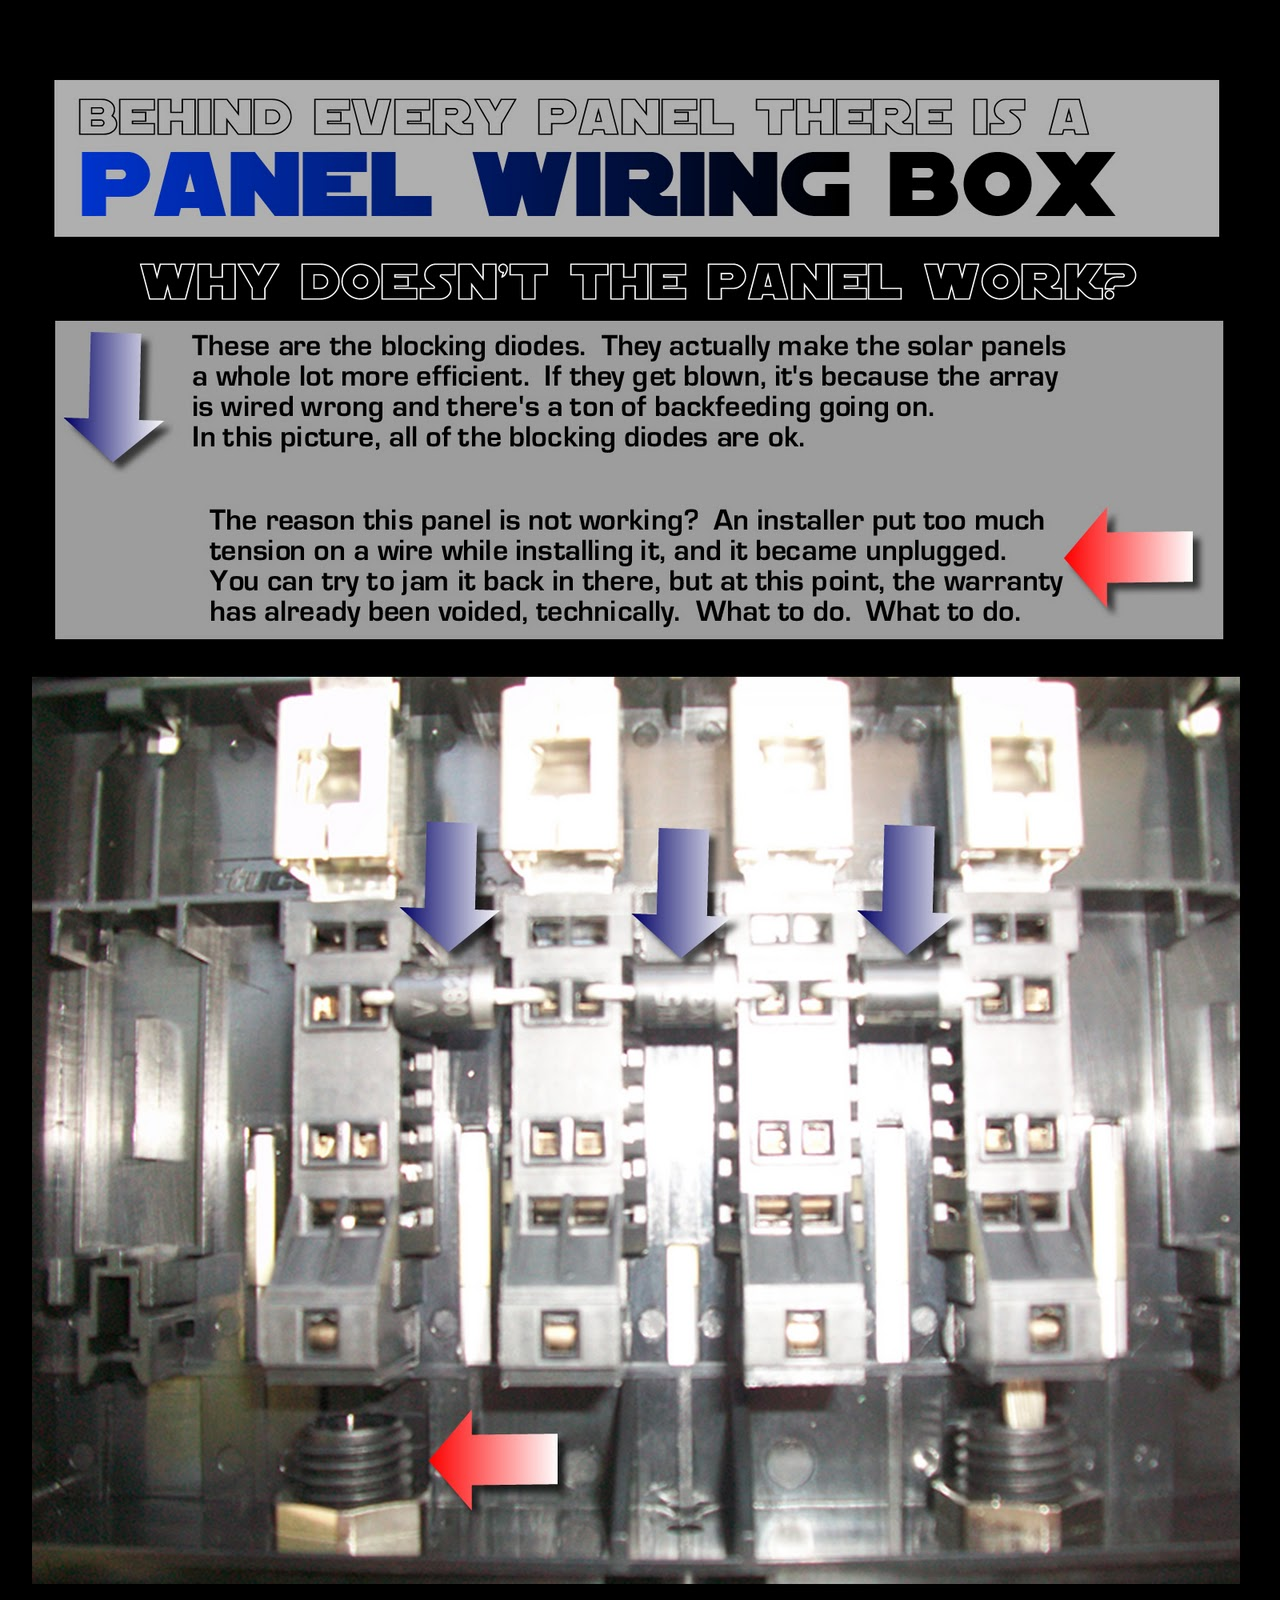 From What It Looks Like There Is A Difference In The Wiring Between